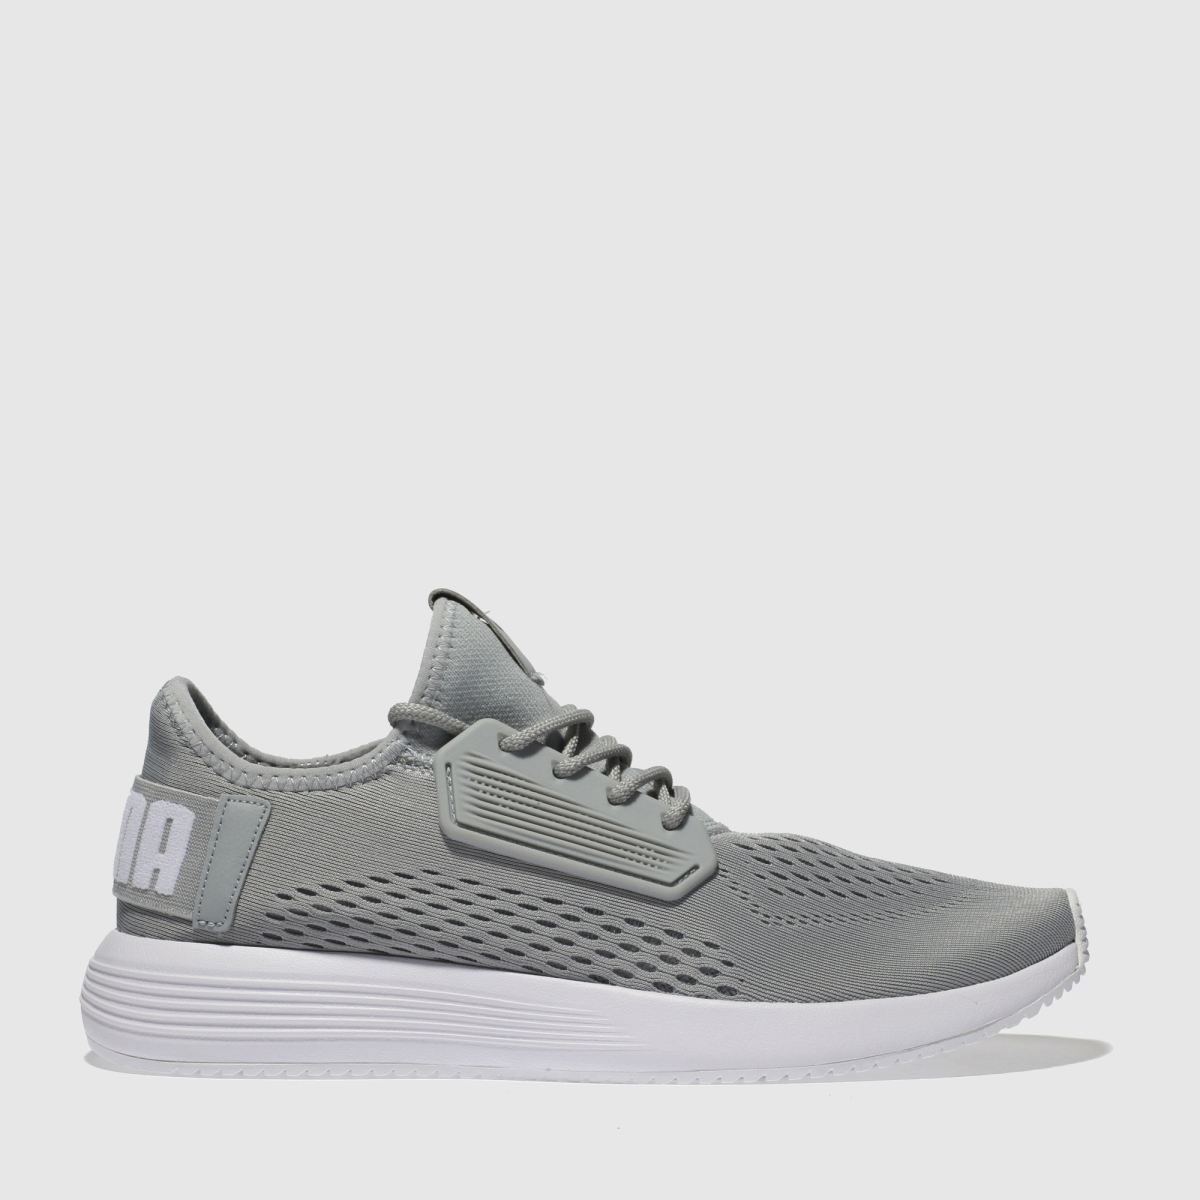 Puma Grey Uprise Trainers